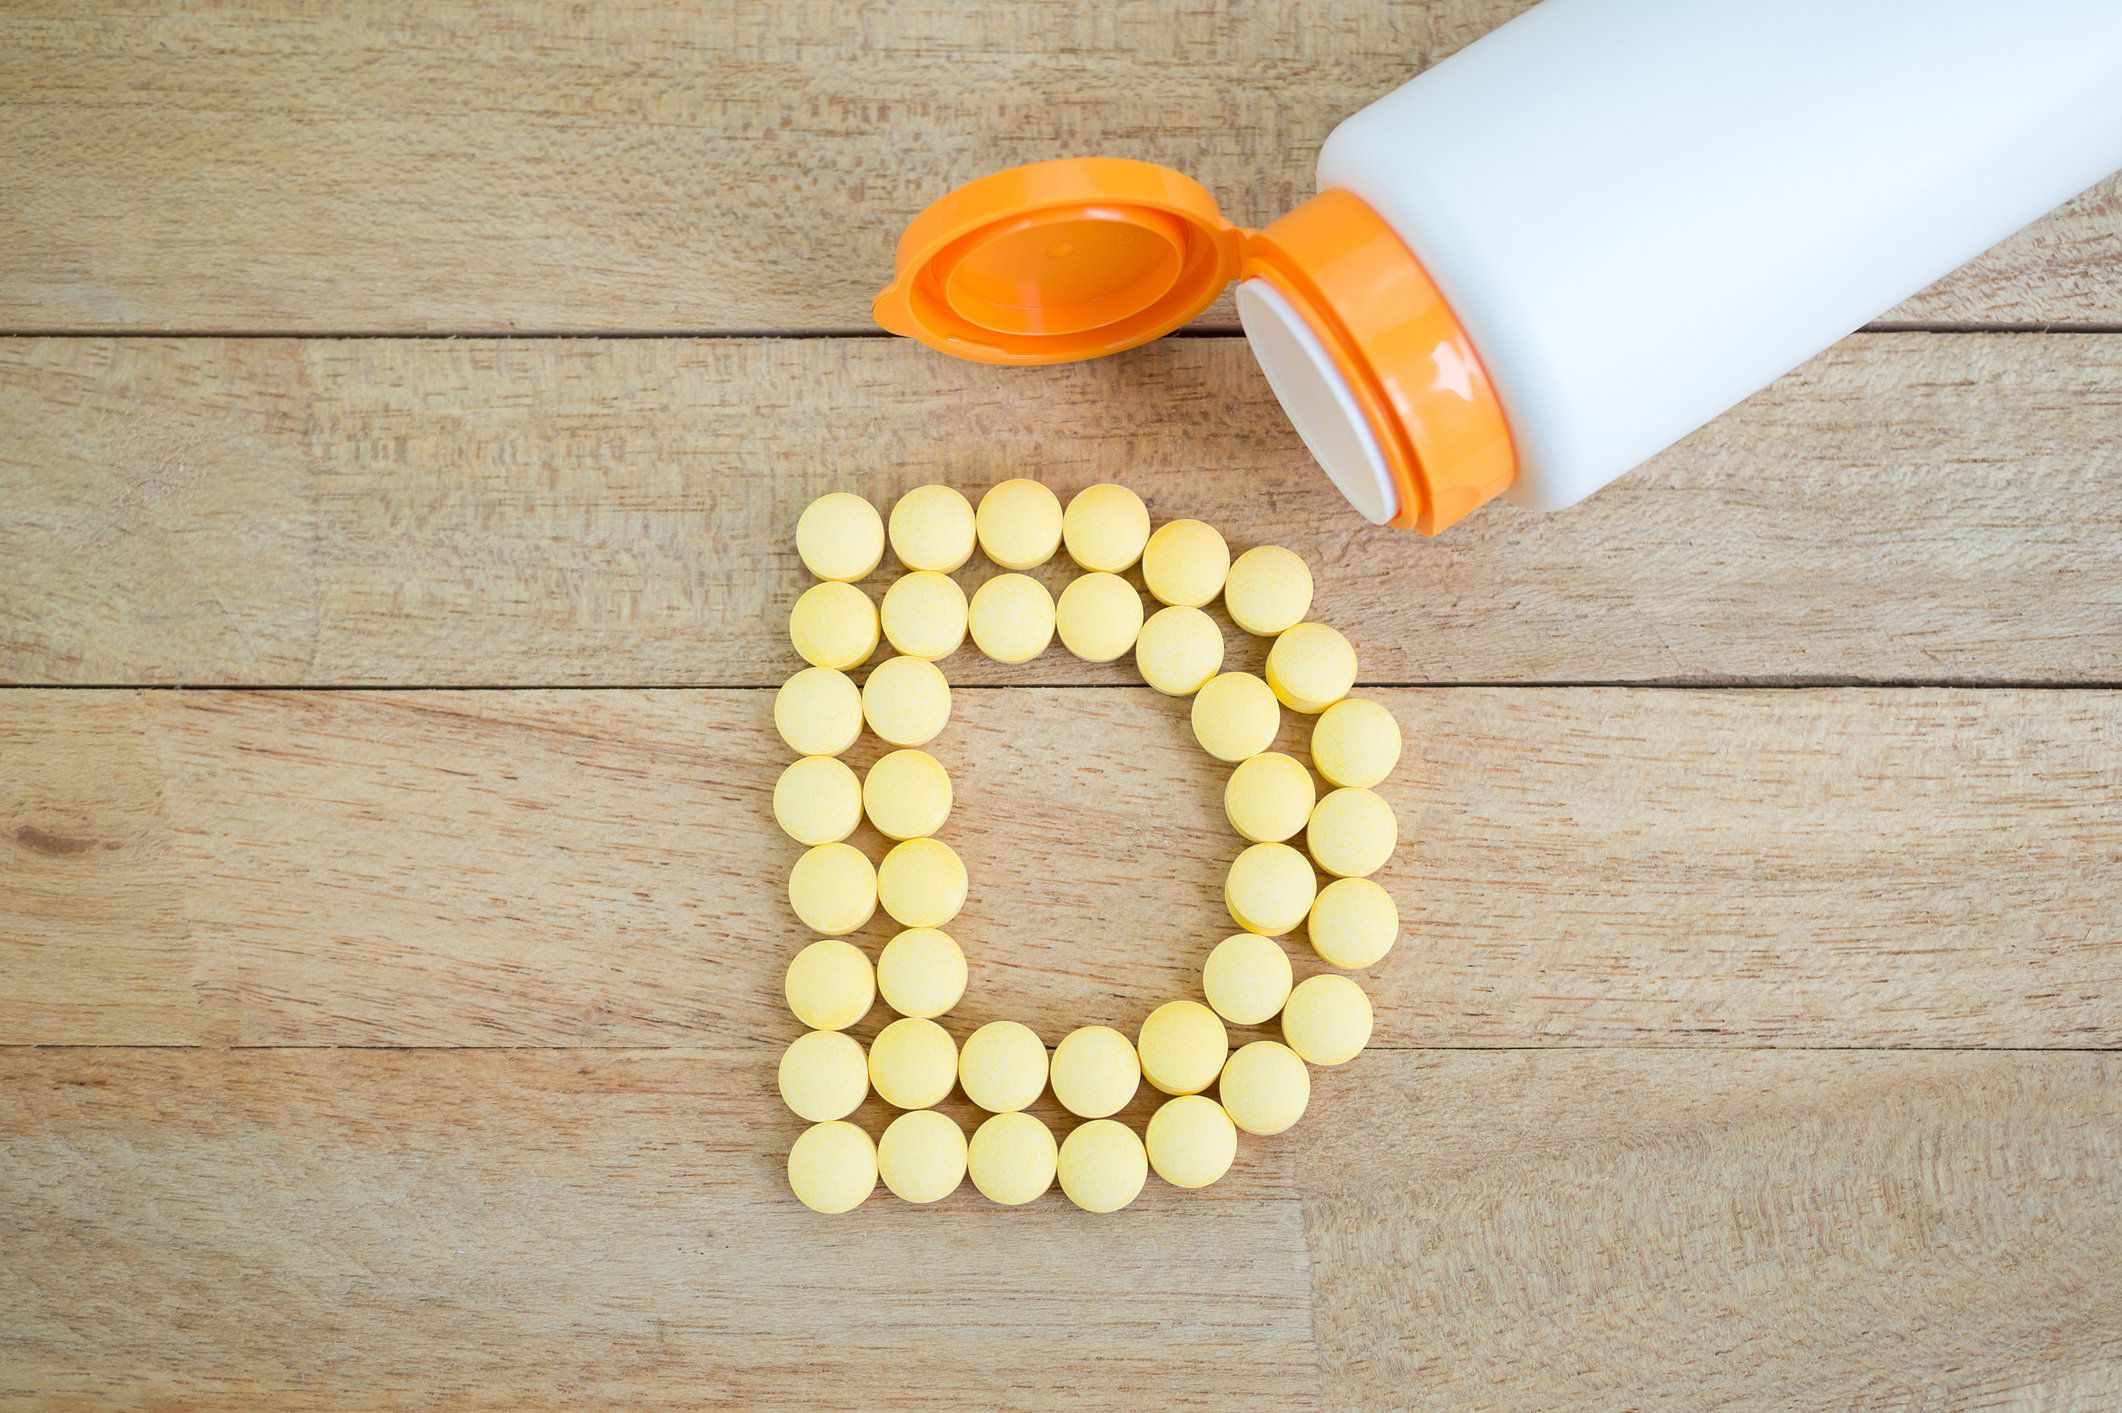 Vitamin D Supplements Don't Help Bone Health, Meta-Study Finds